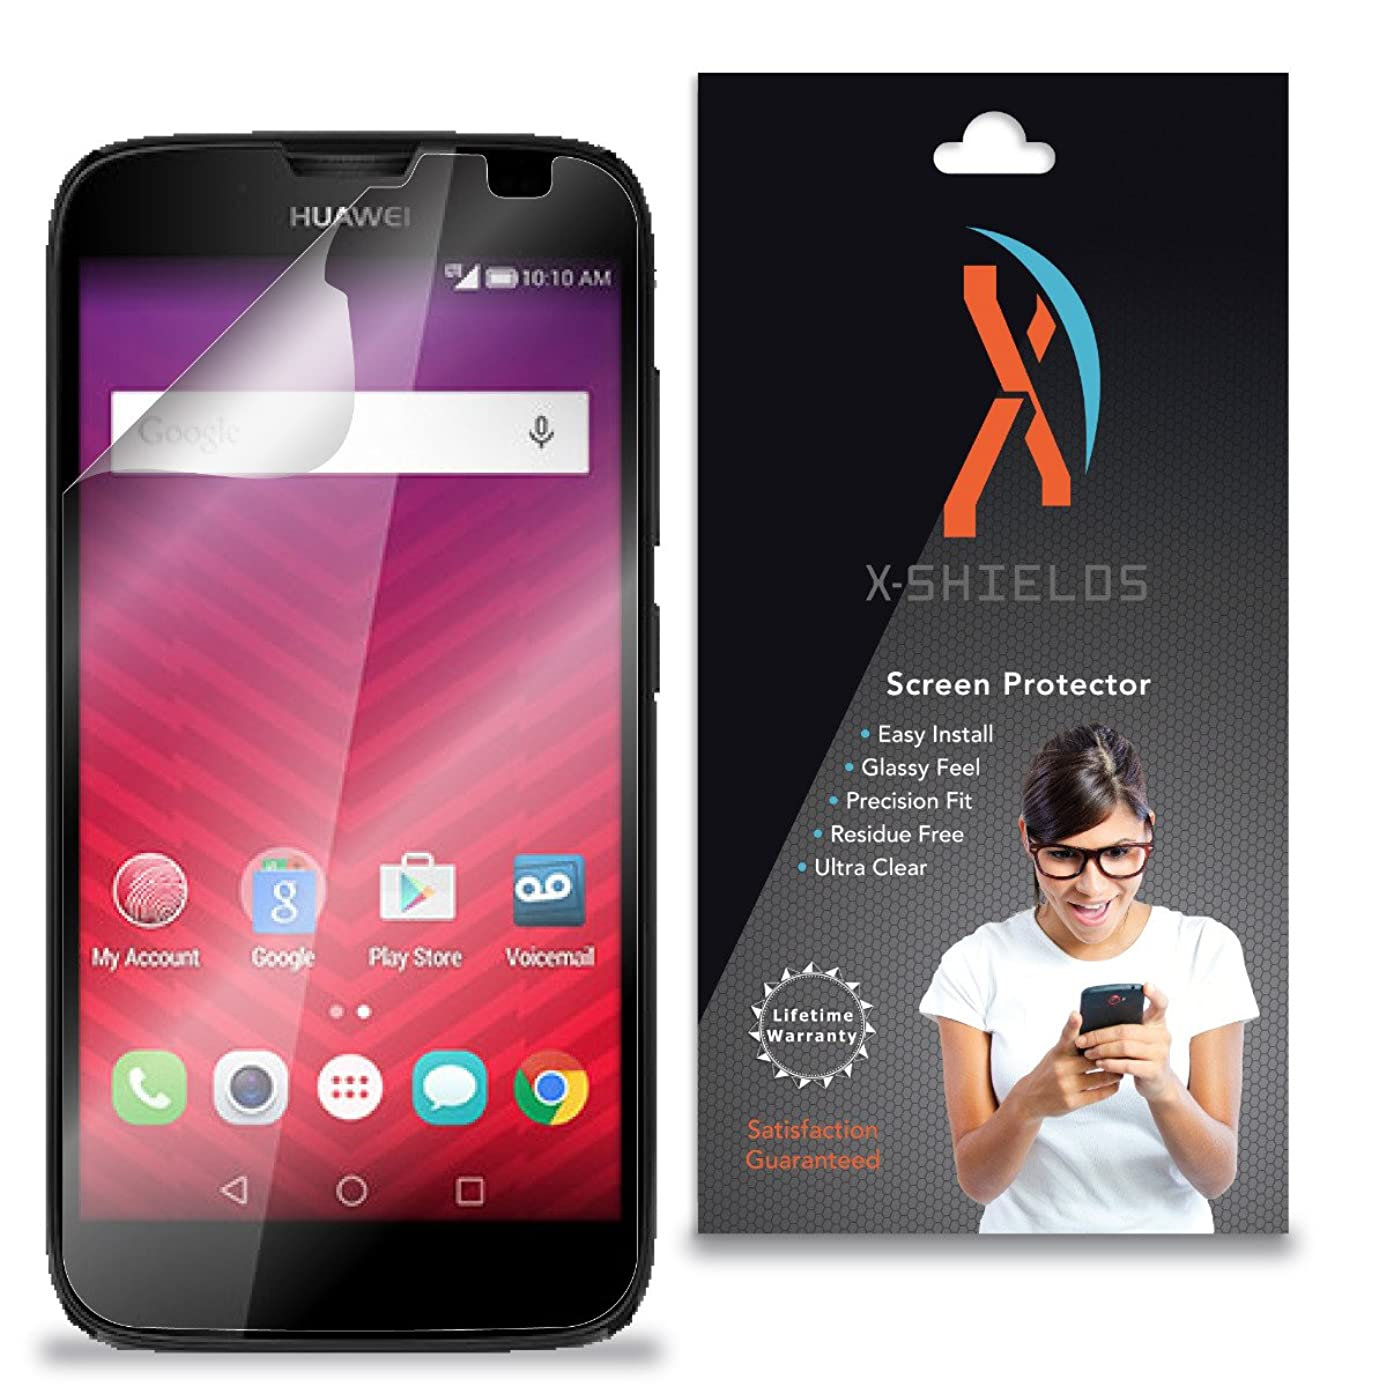 XShields? (5-Pack) Screen Protectors for Huawei Union Y538 (Ultra Clear)